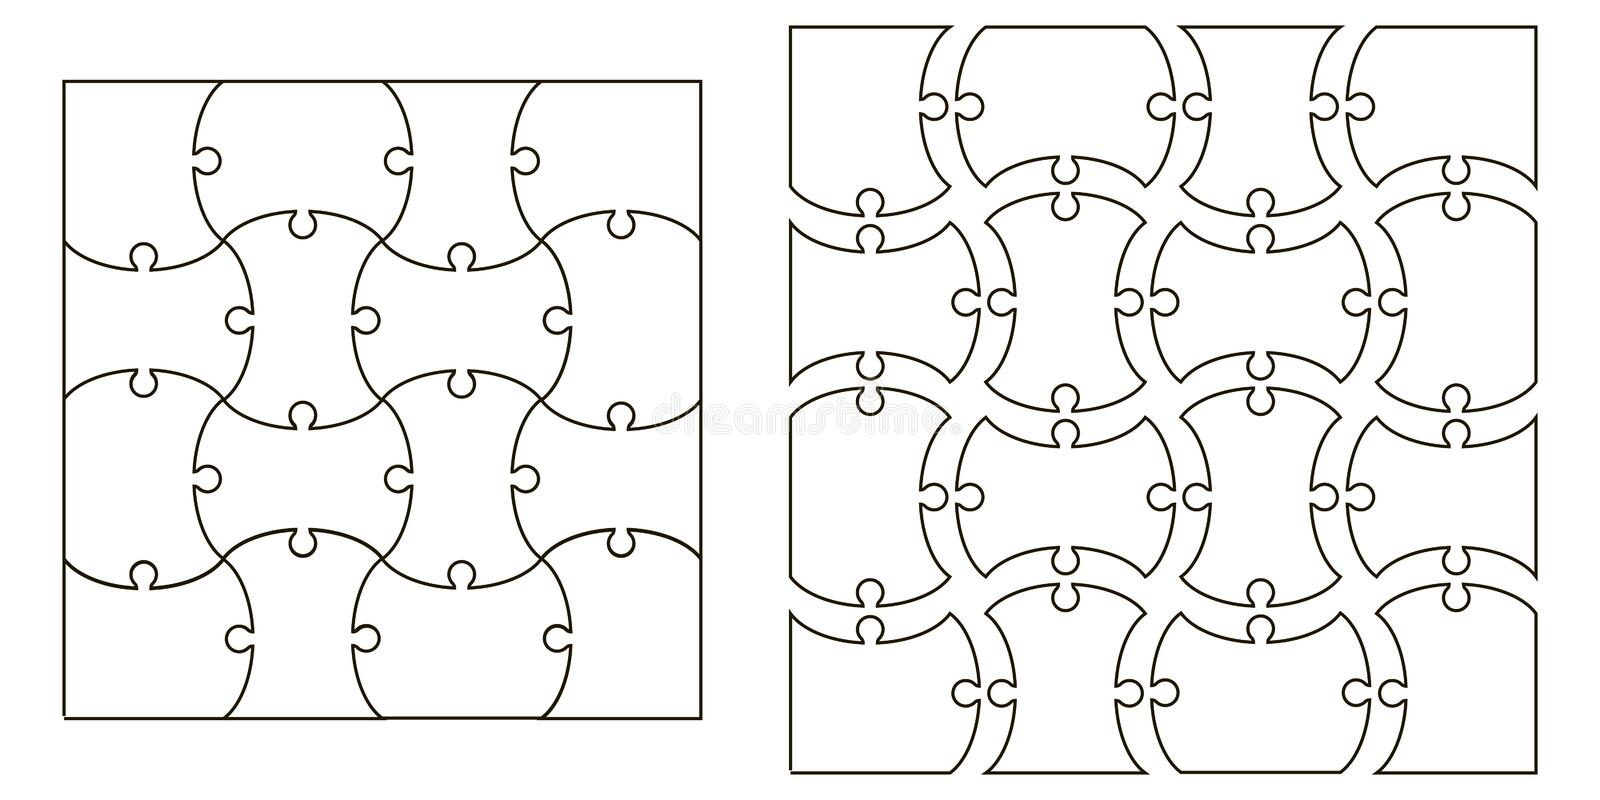 Set the template Puzzle Pieces, vector set for creating complex jigsaw puzzle pieces, image applicable to several concepts vector illustration